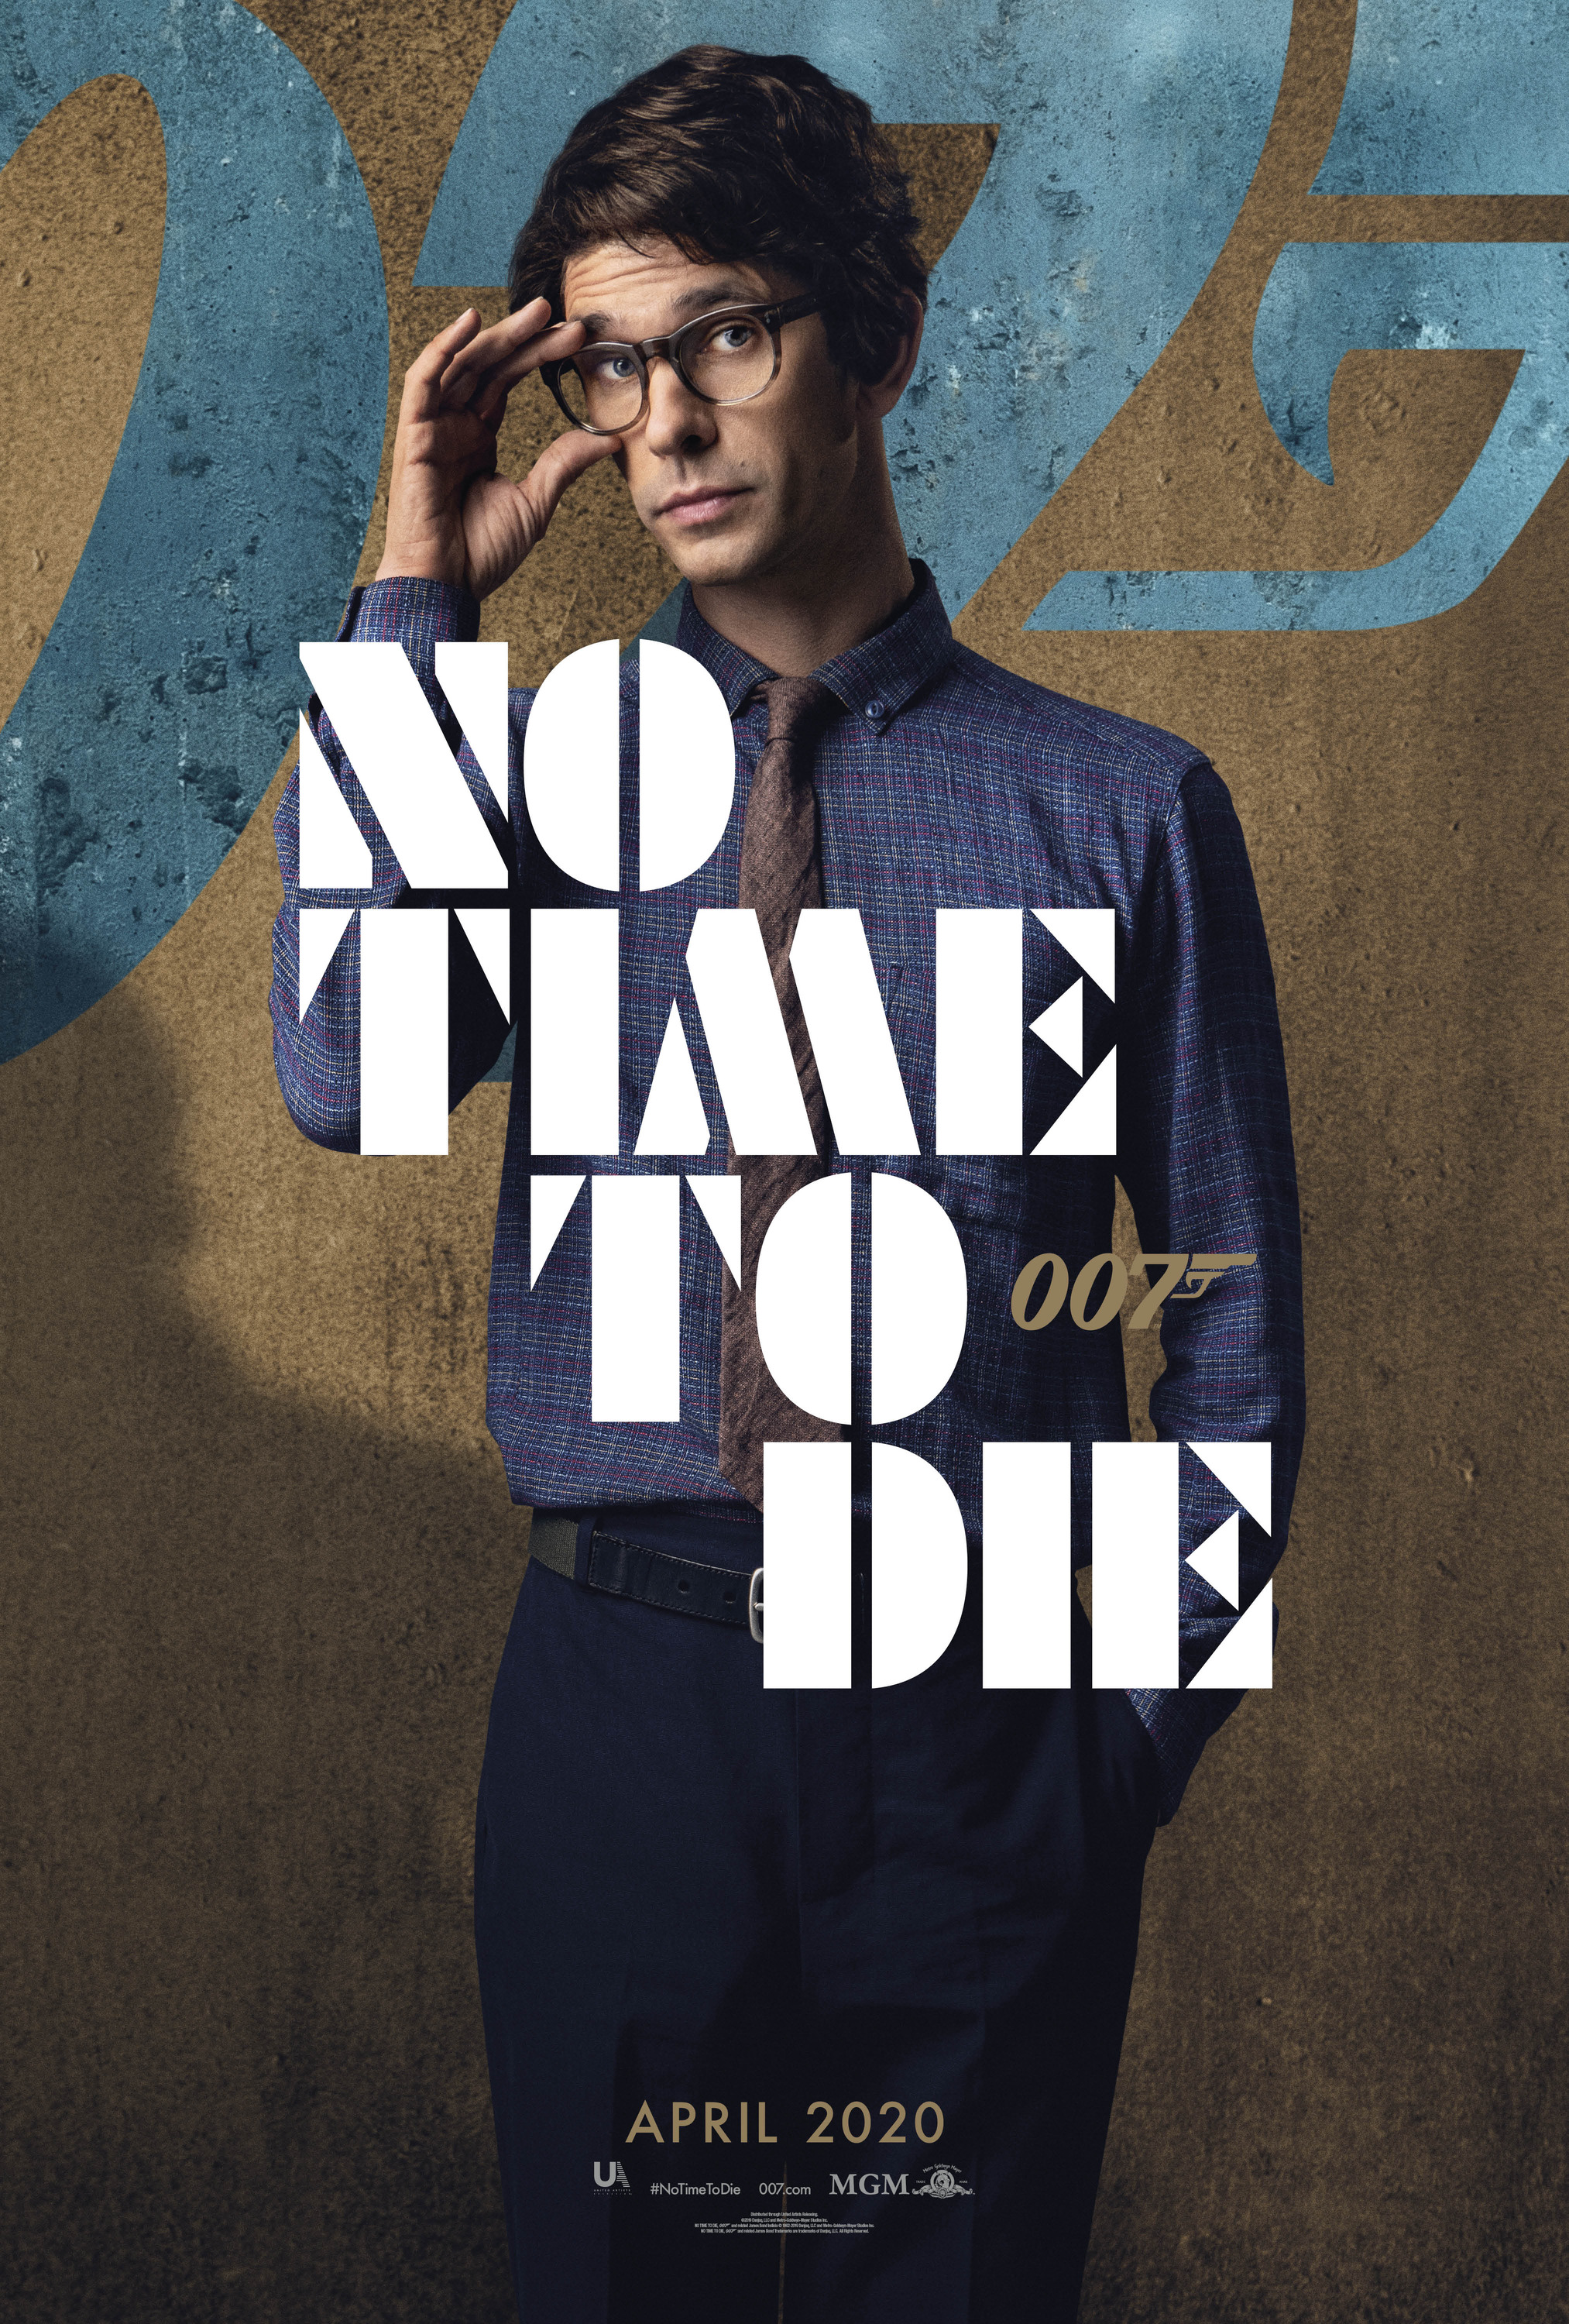 szmk_james_bond_nincs_ido_meghalni_no_time_to_die_007_daniel_craig_4.jpg